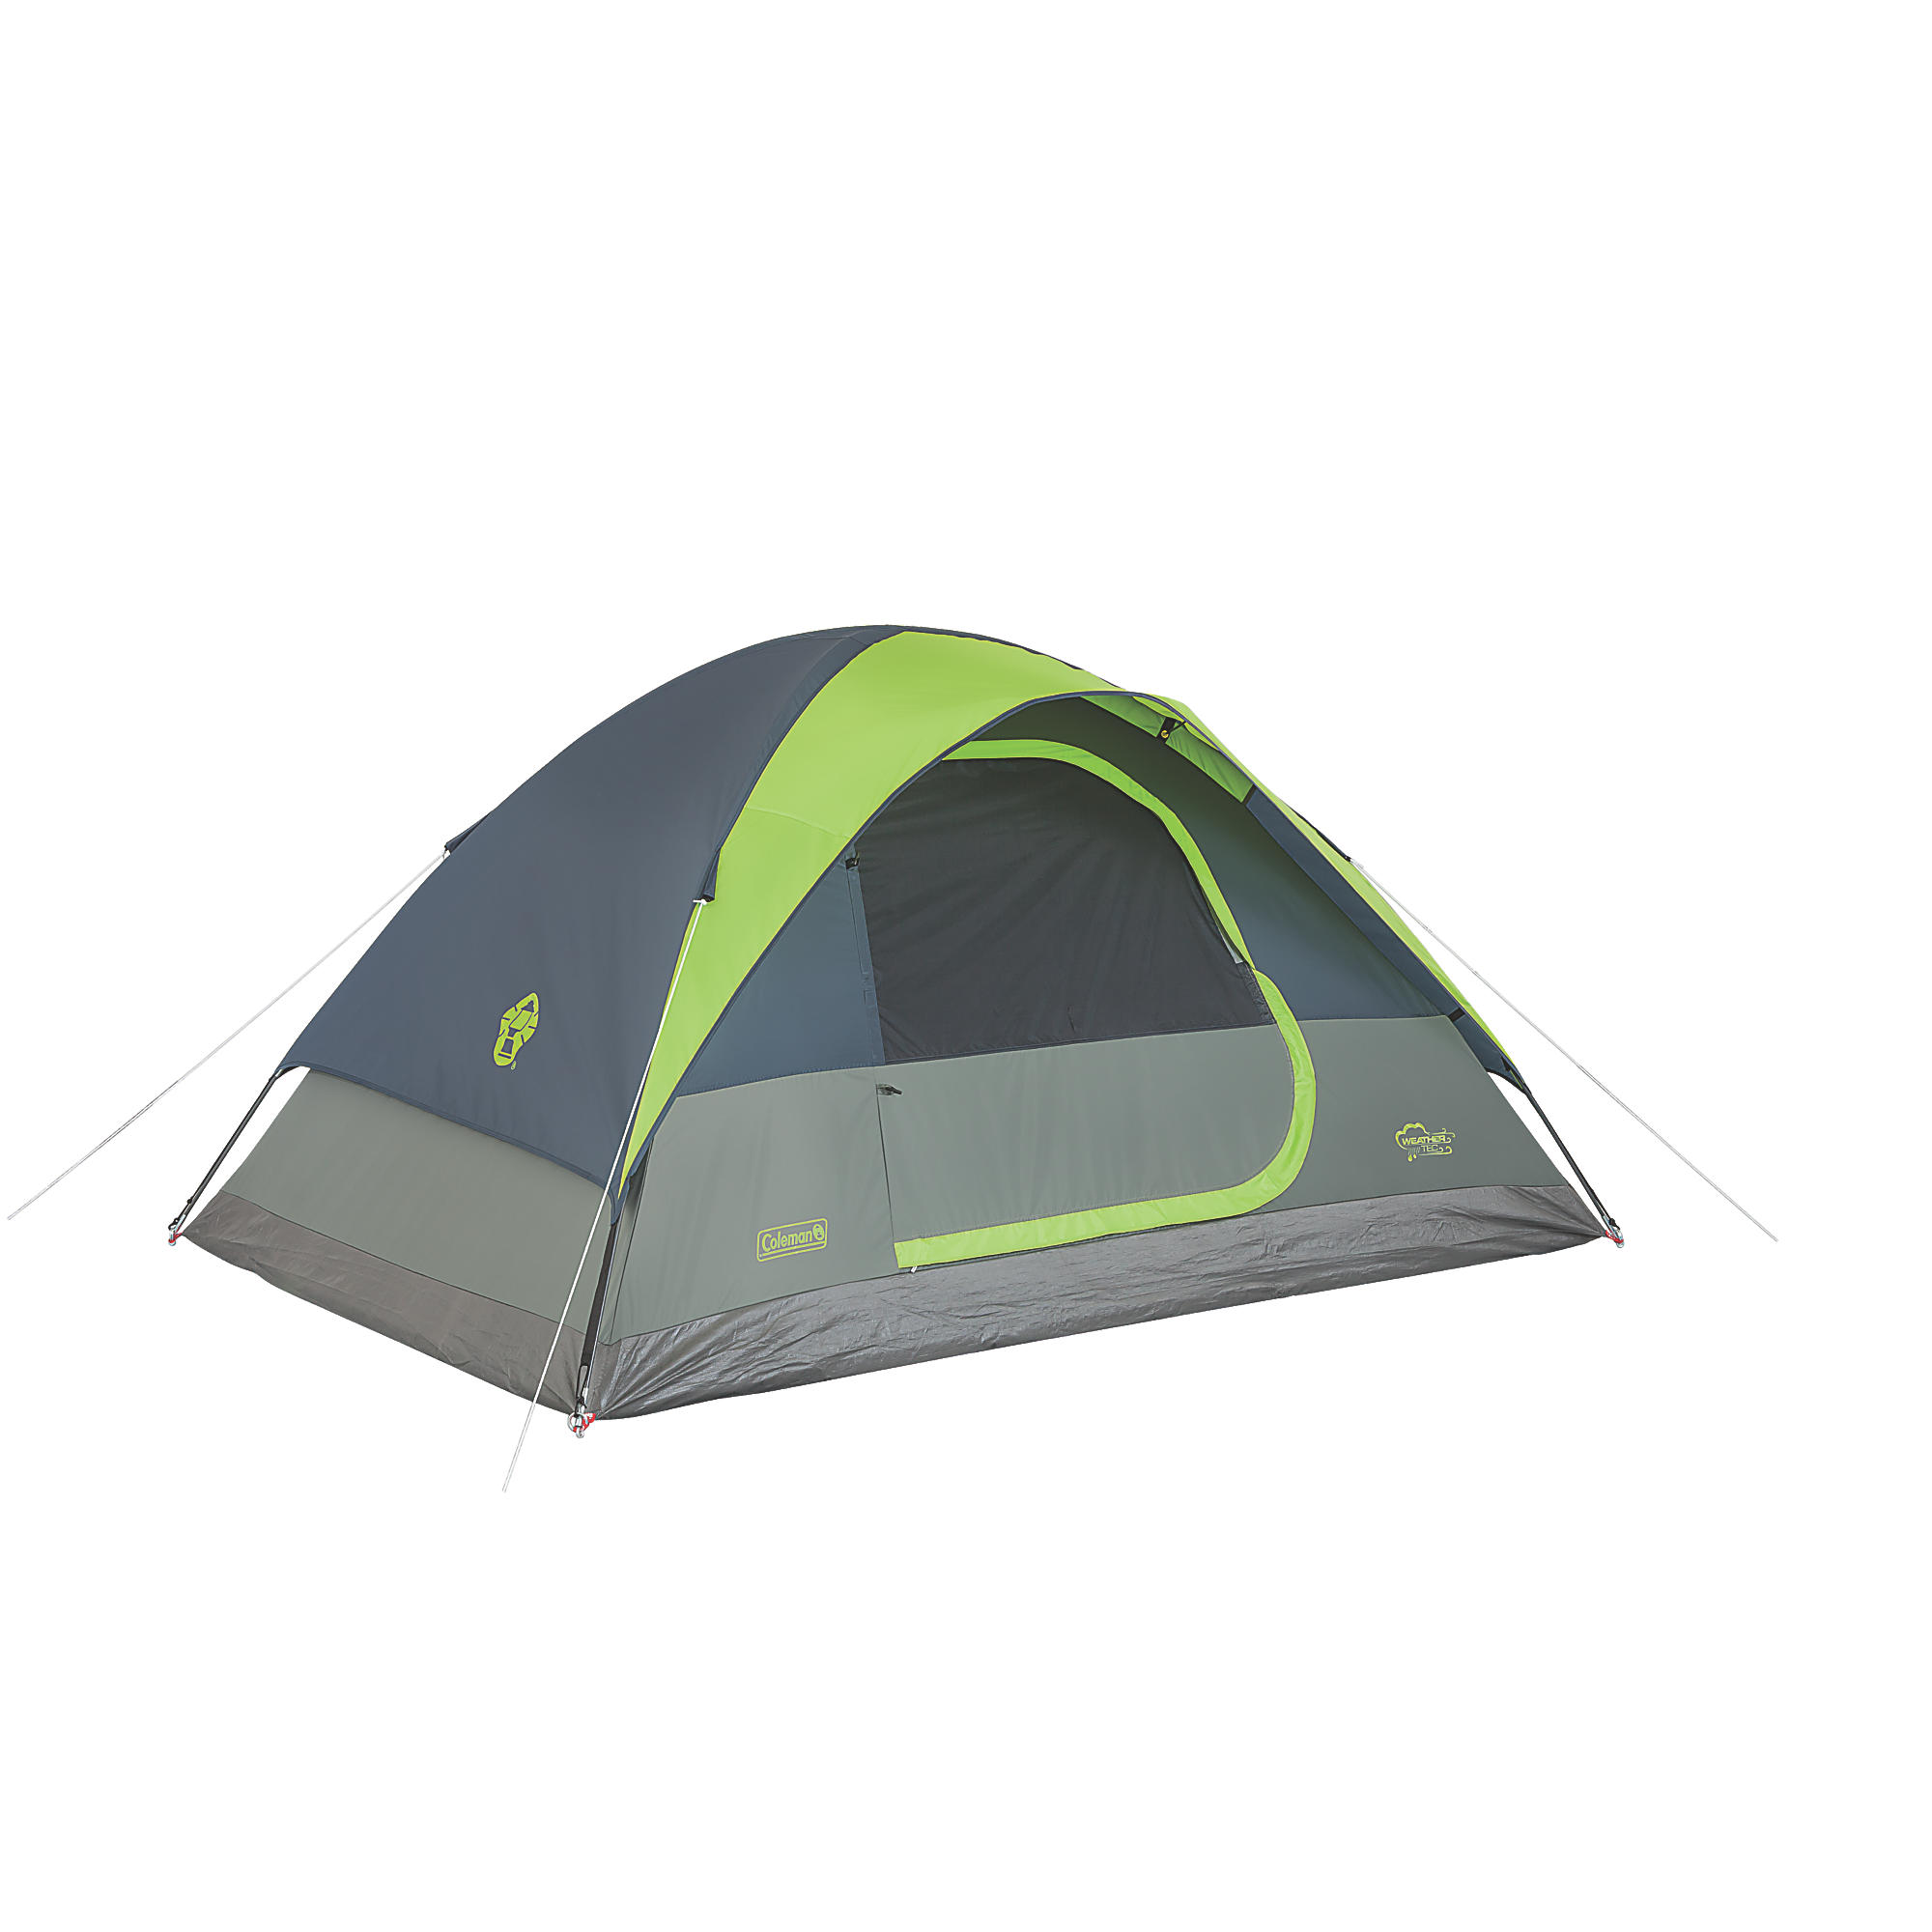 Highline II™ 4P Dome Tent  sc 1 st  Coleman & Tents u0026 Shelters